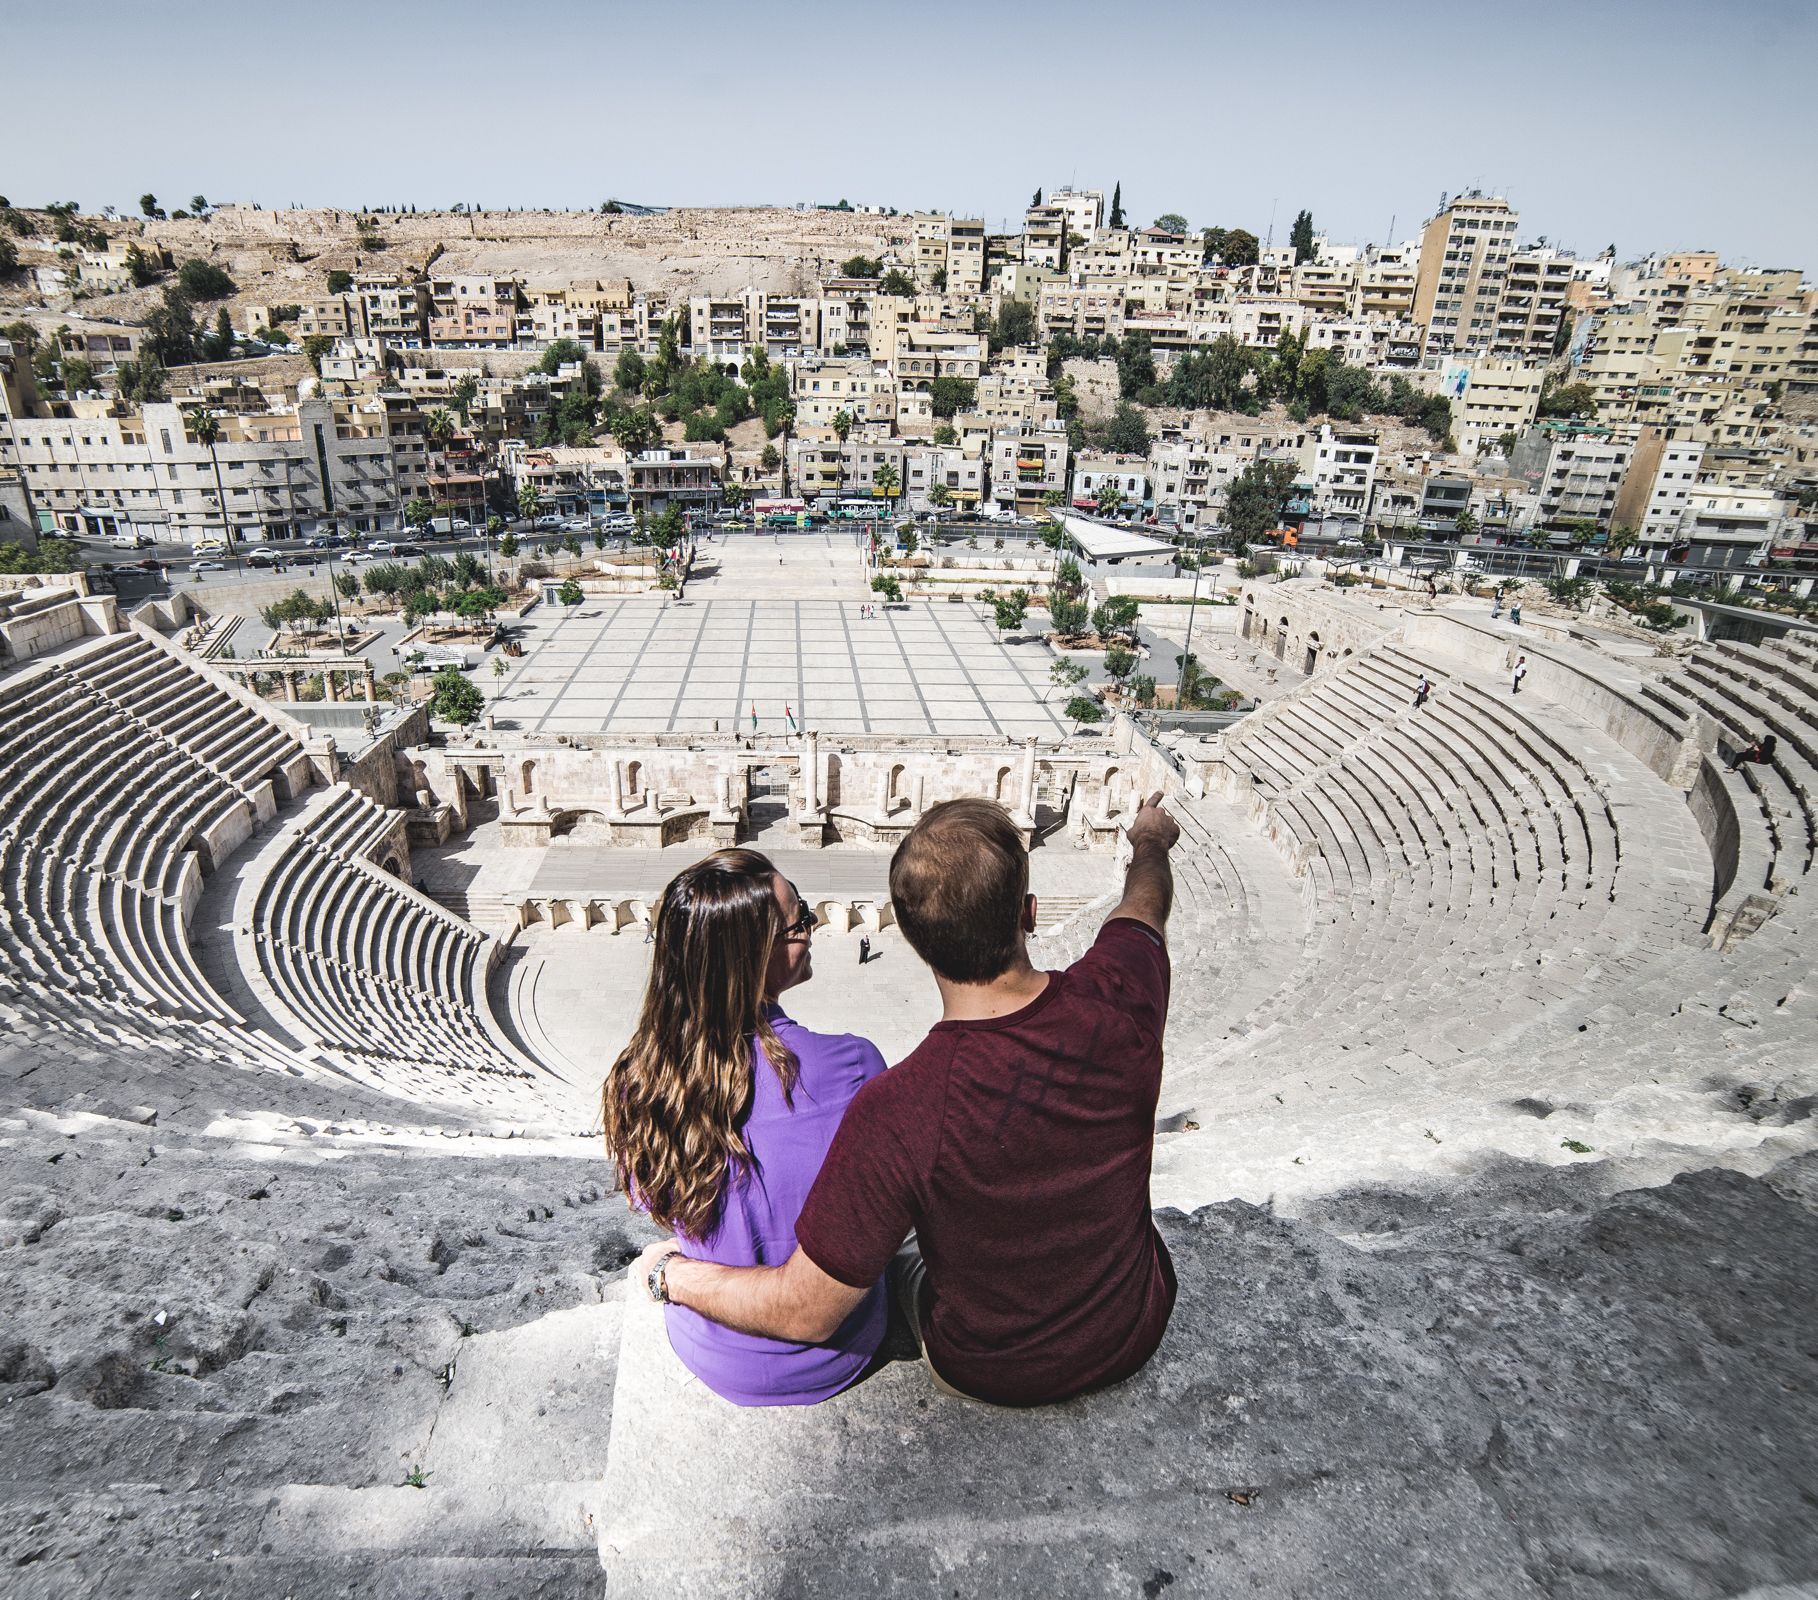 Jordan - most romantic places to travel